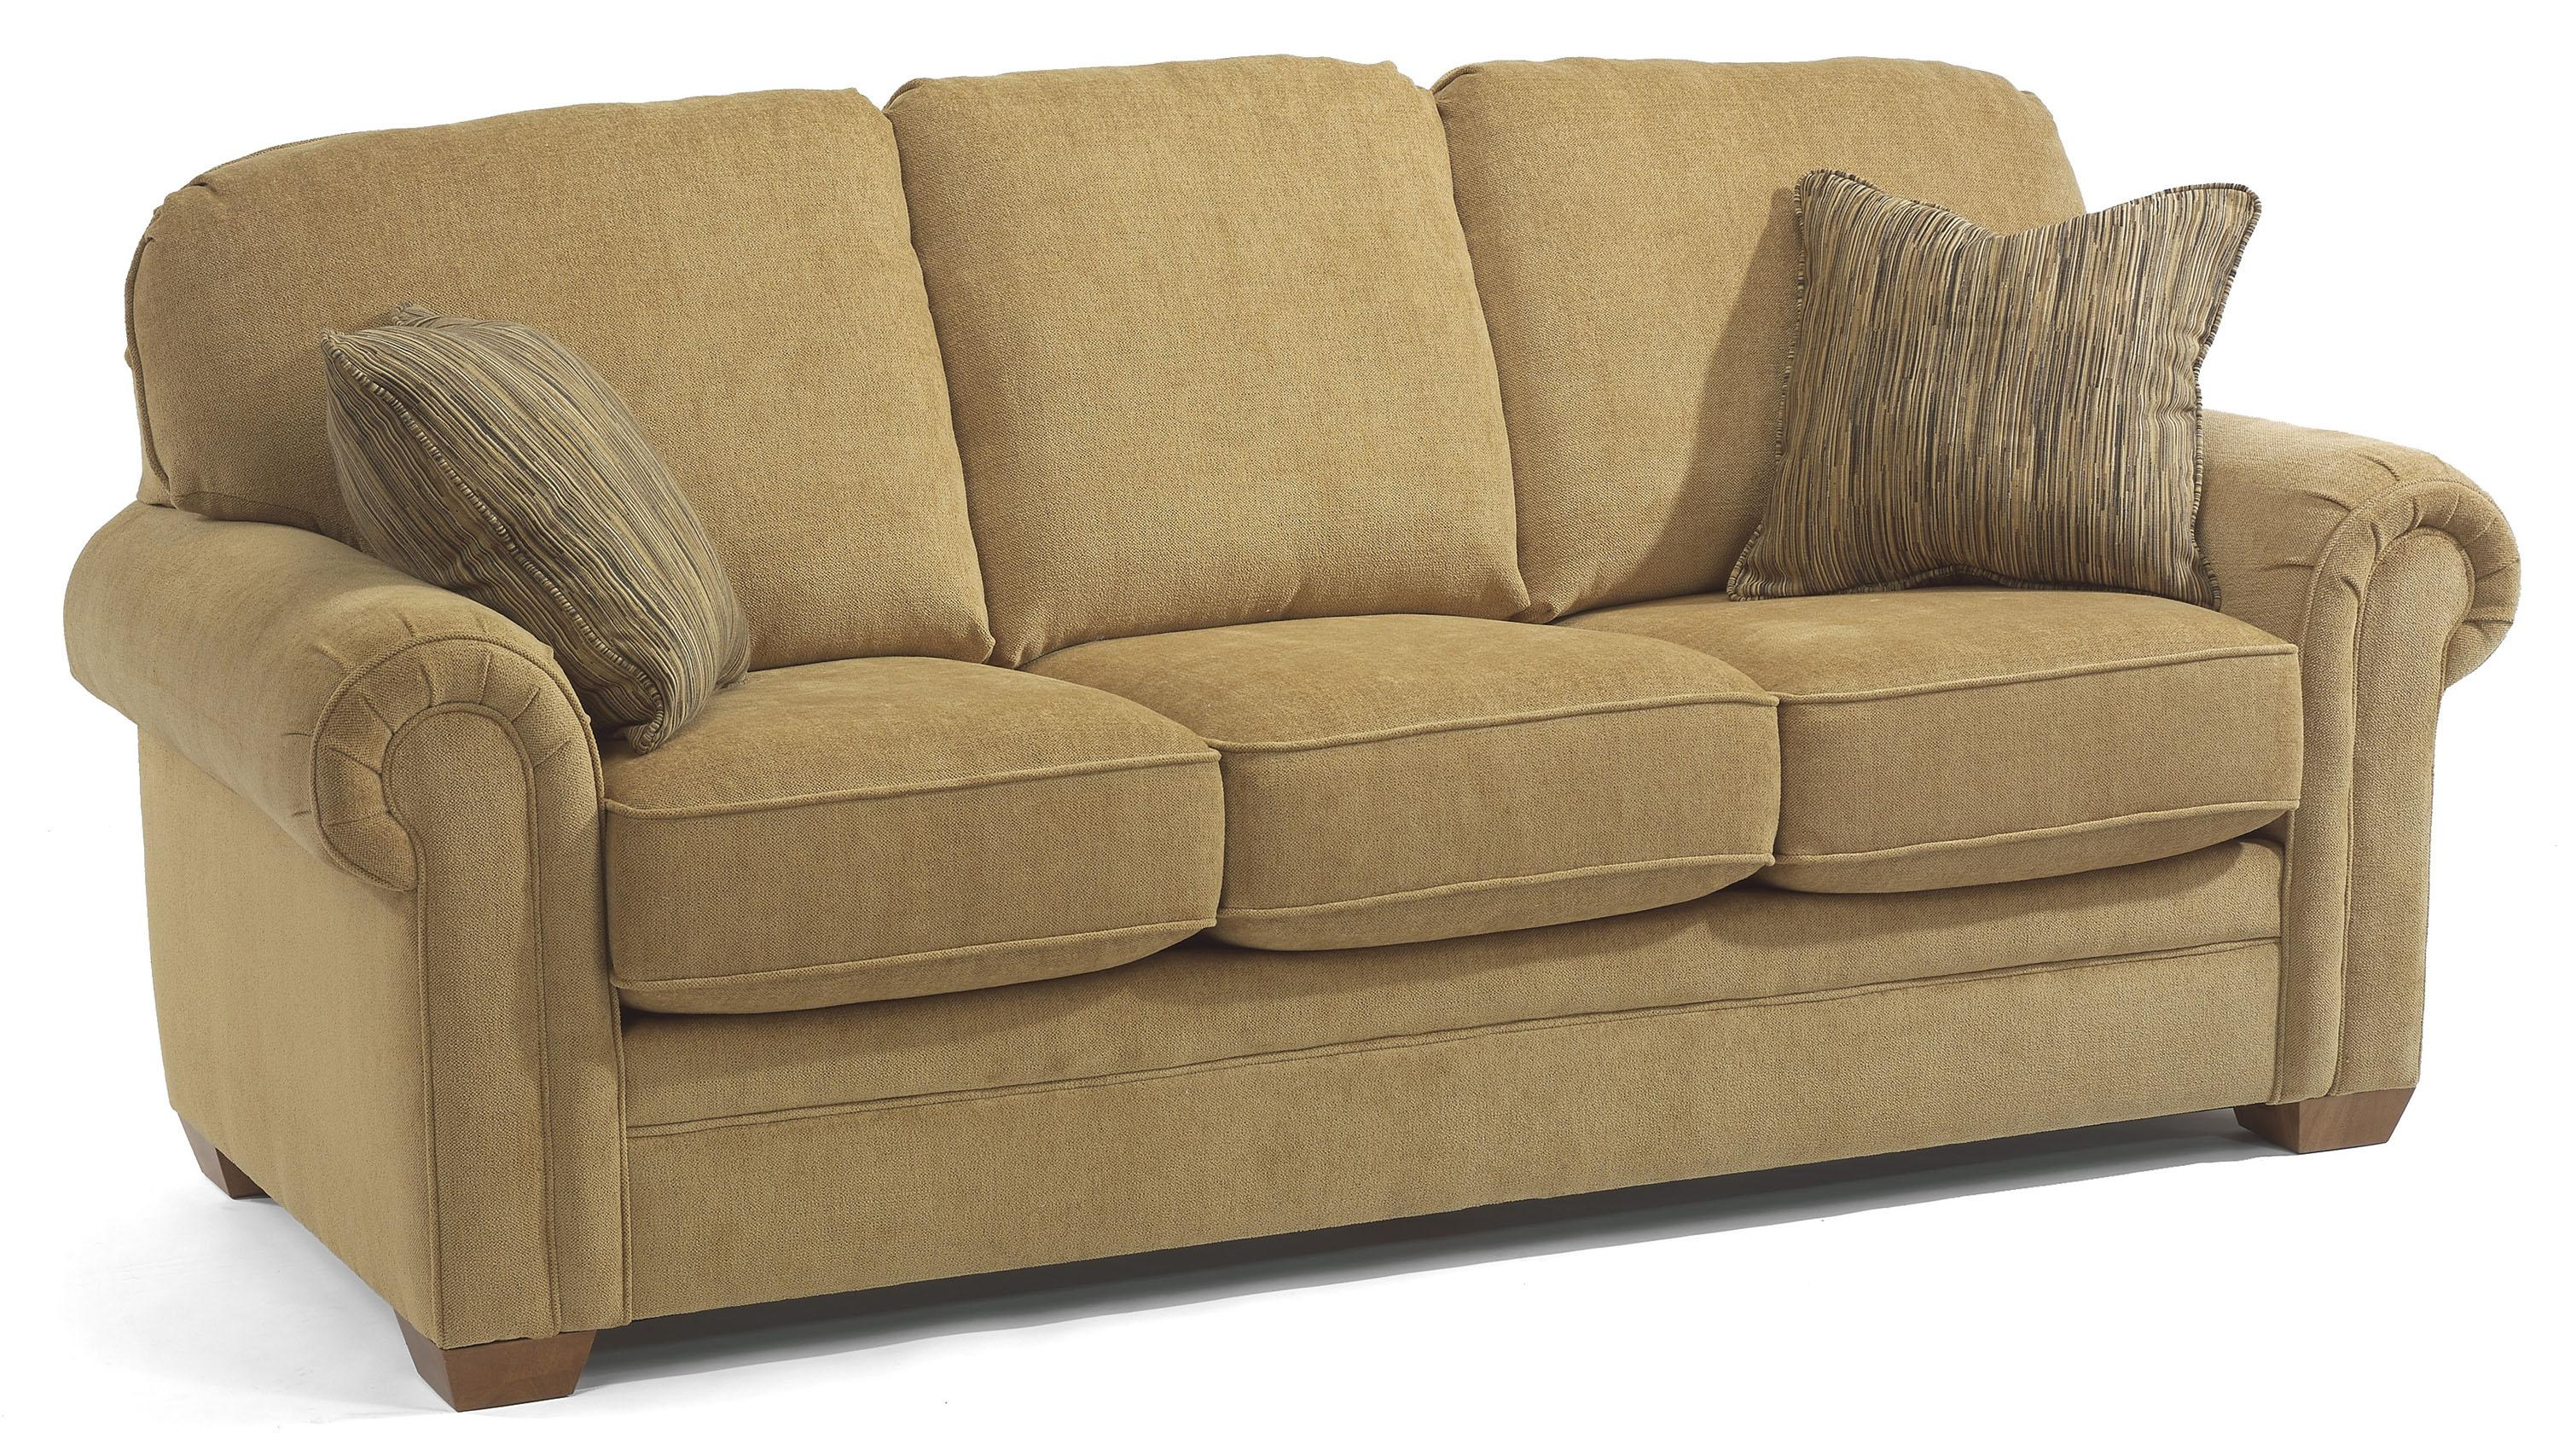 Flexsteel Harrison Sofa - Item Number: 7271-31